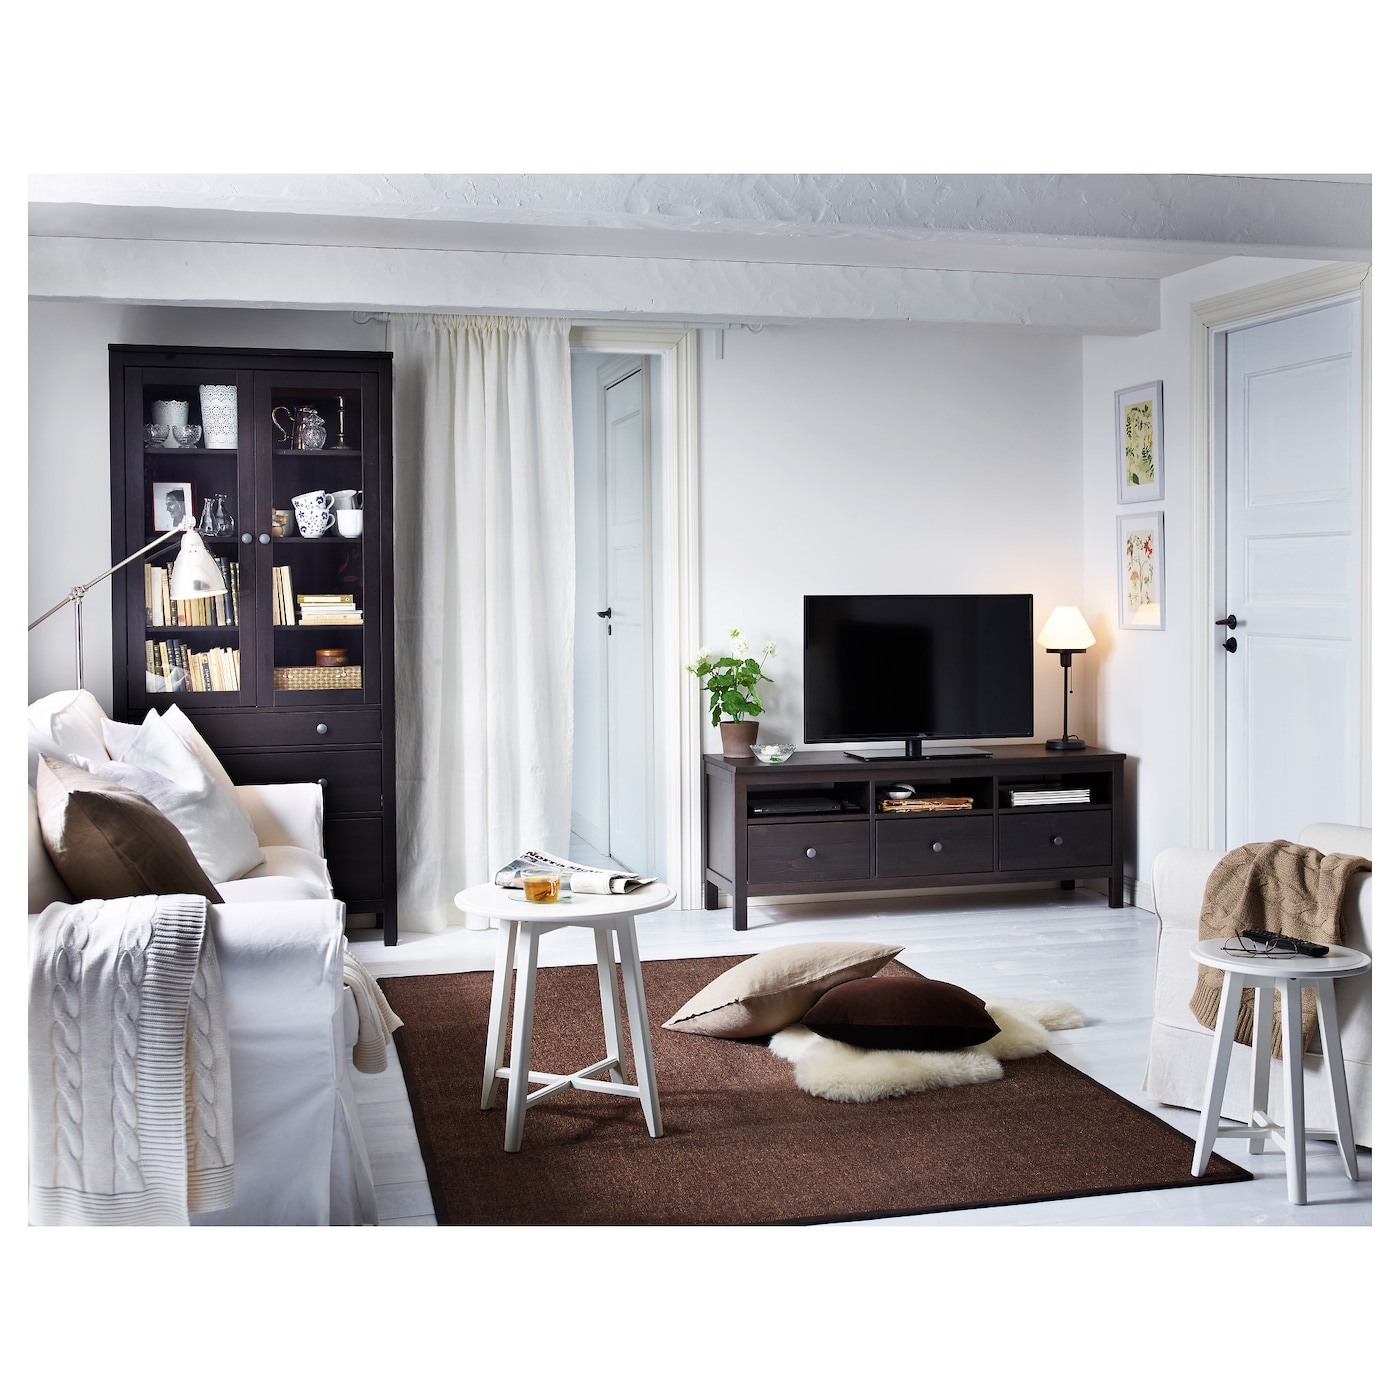 Hemnes Coffee Table White Stain 90 X 90 Cm: HEMNES Glass-door Cabinet With 3 Drawers Black-brown 90 X